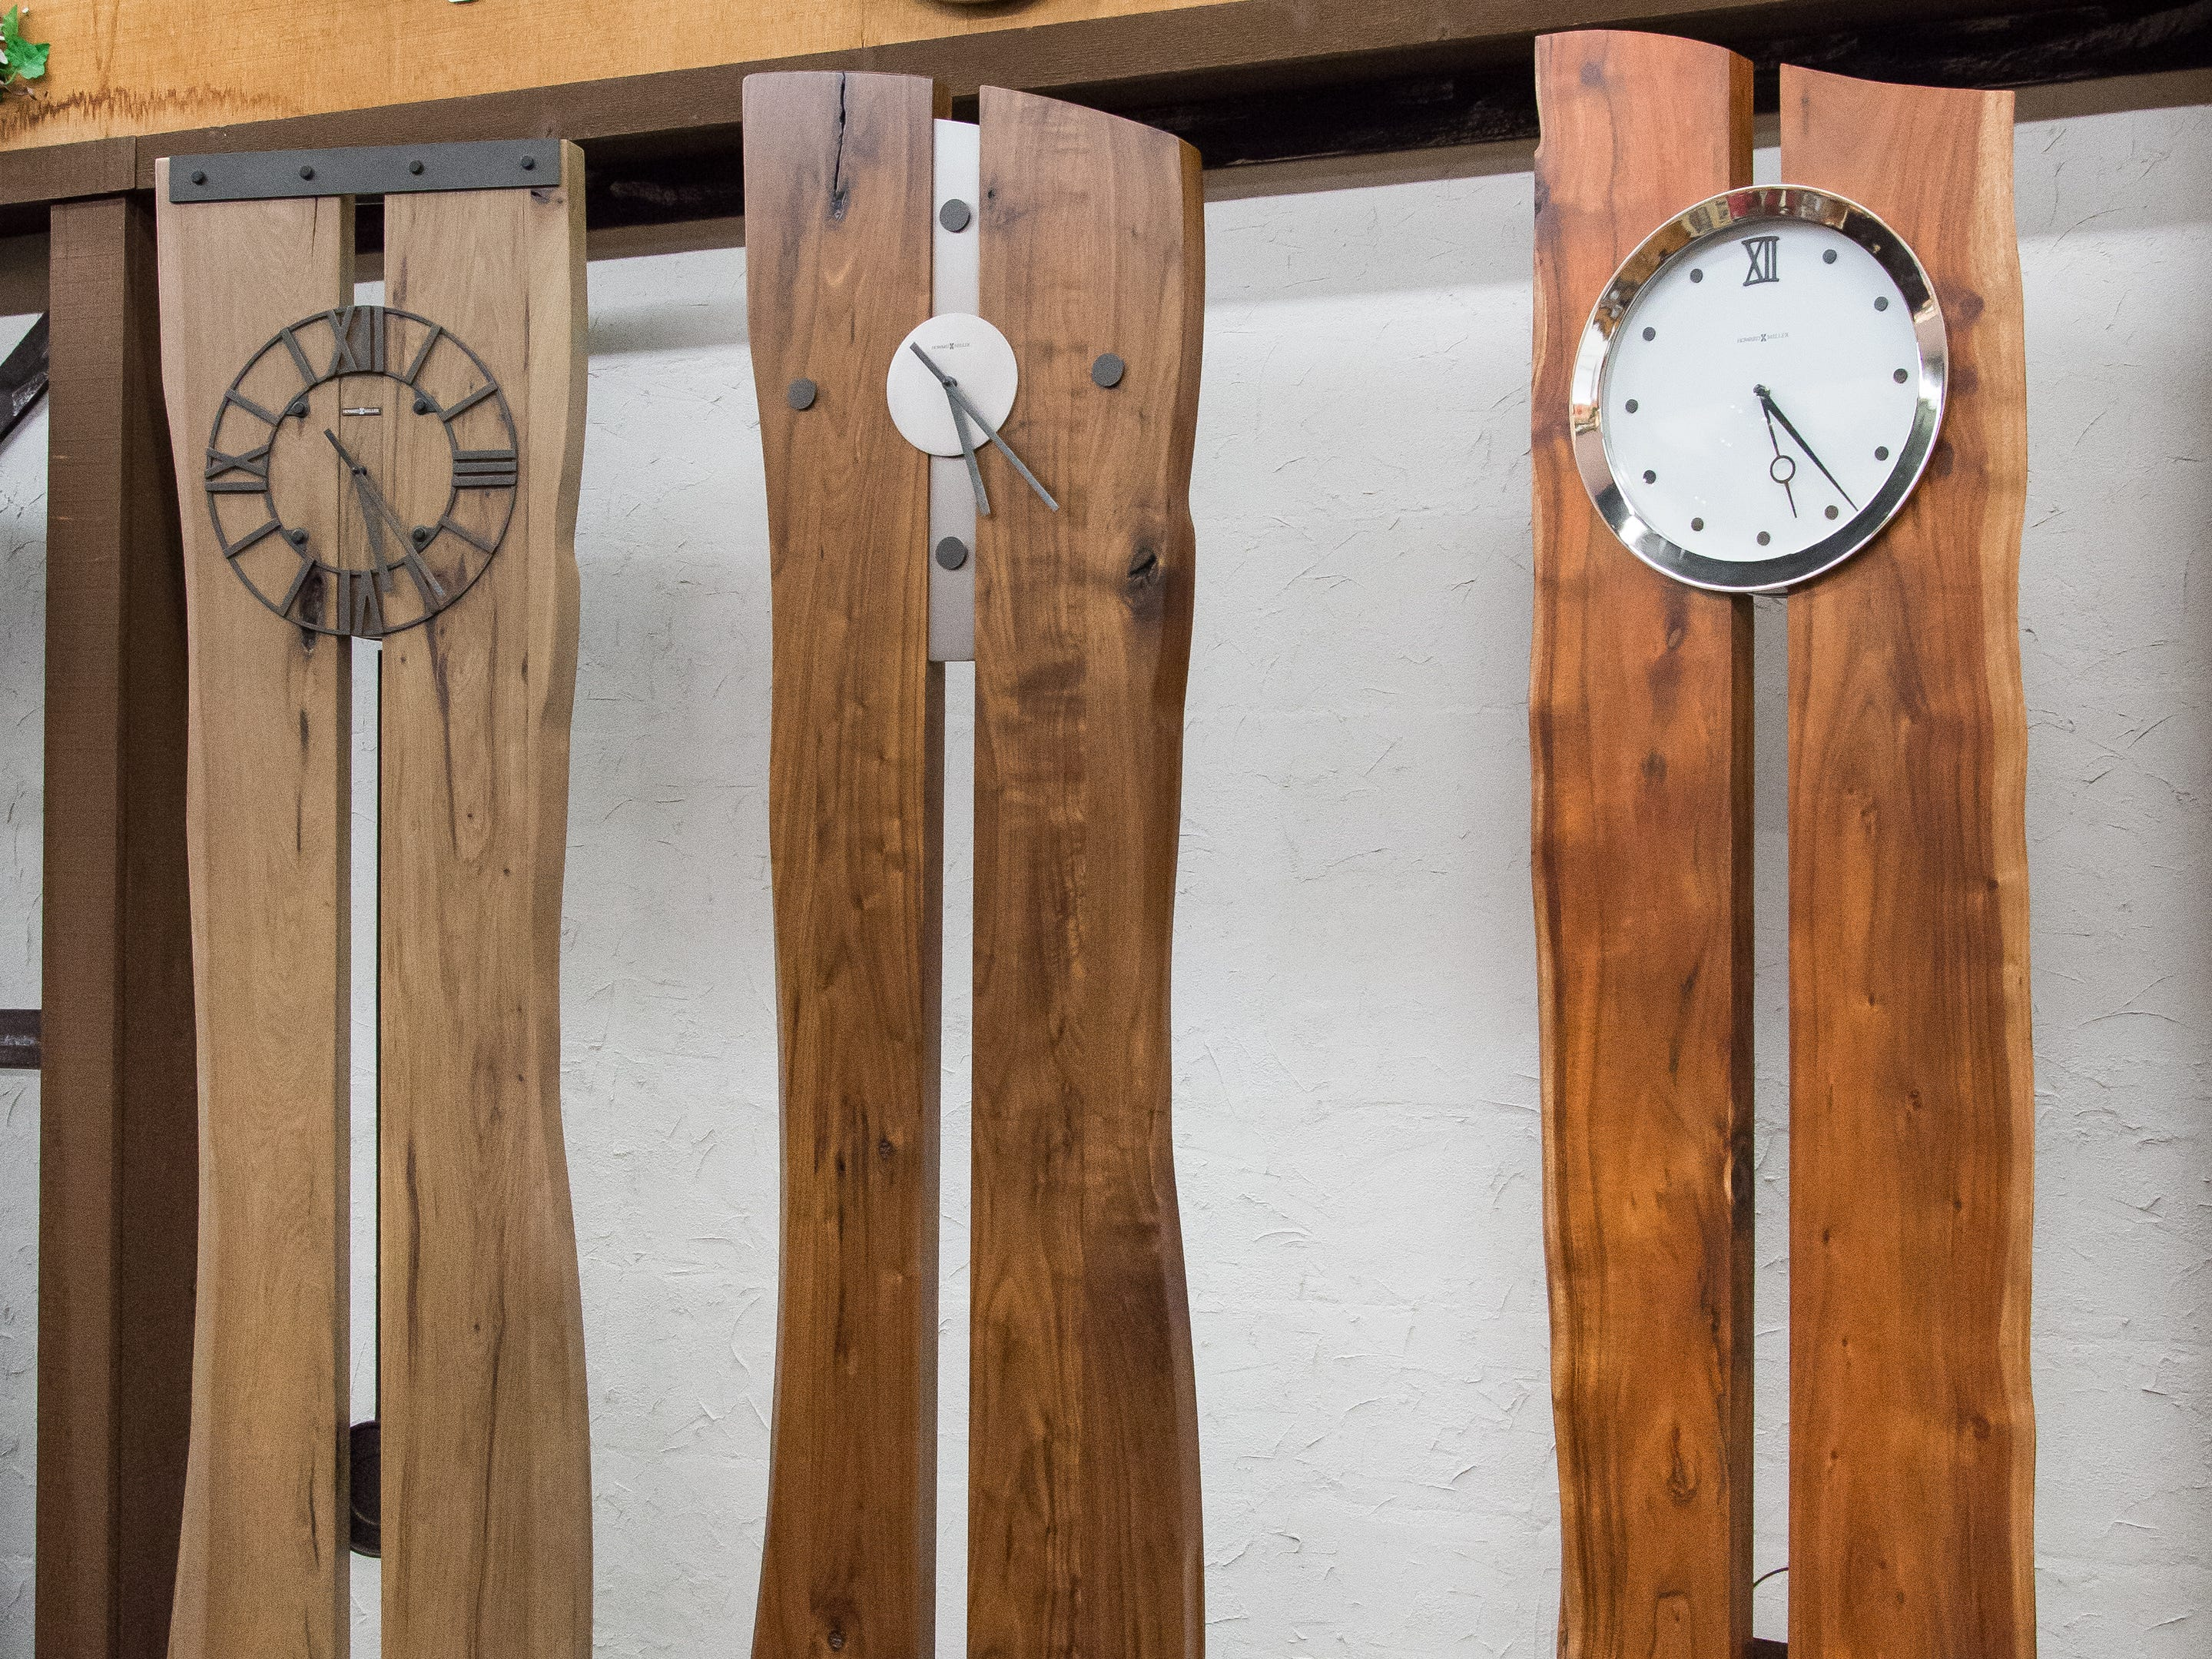 Live-edge floor clocks are made of different hardwoods including solid hickory, walnut and acacia. About 82 inches tall, they're priced at $1,549 to $1,699 at the Little Swiss Clock Shop.